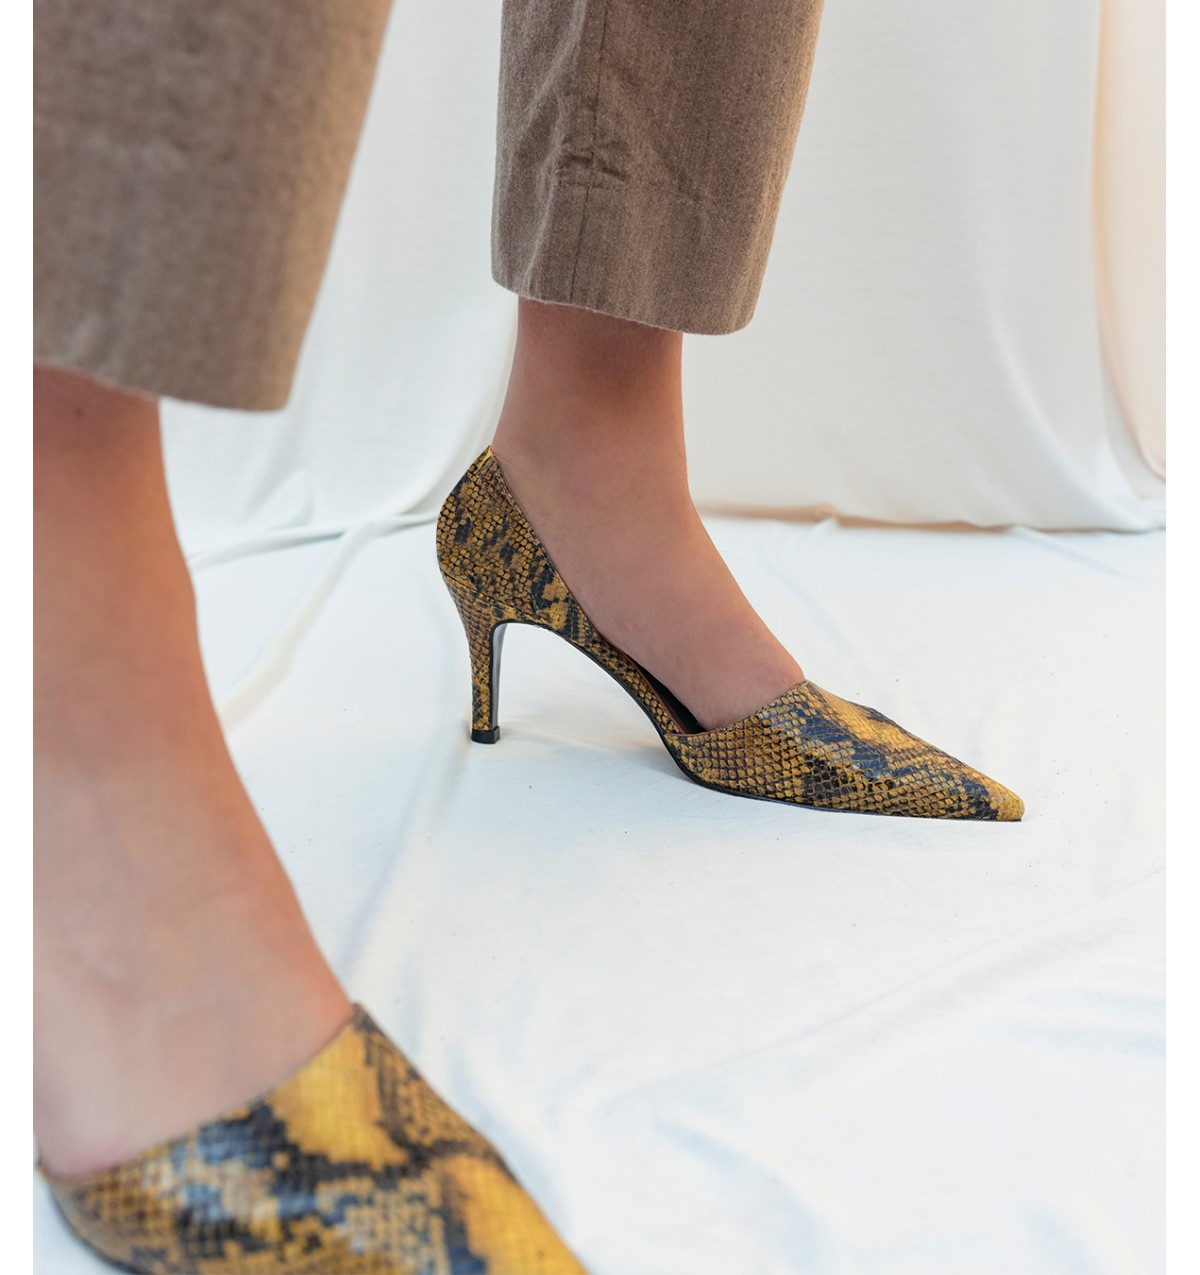 Afrodita Pump Picara Yellow by De Las Cuevas Barcelona